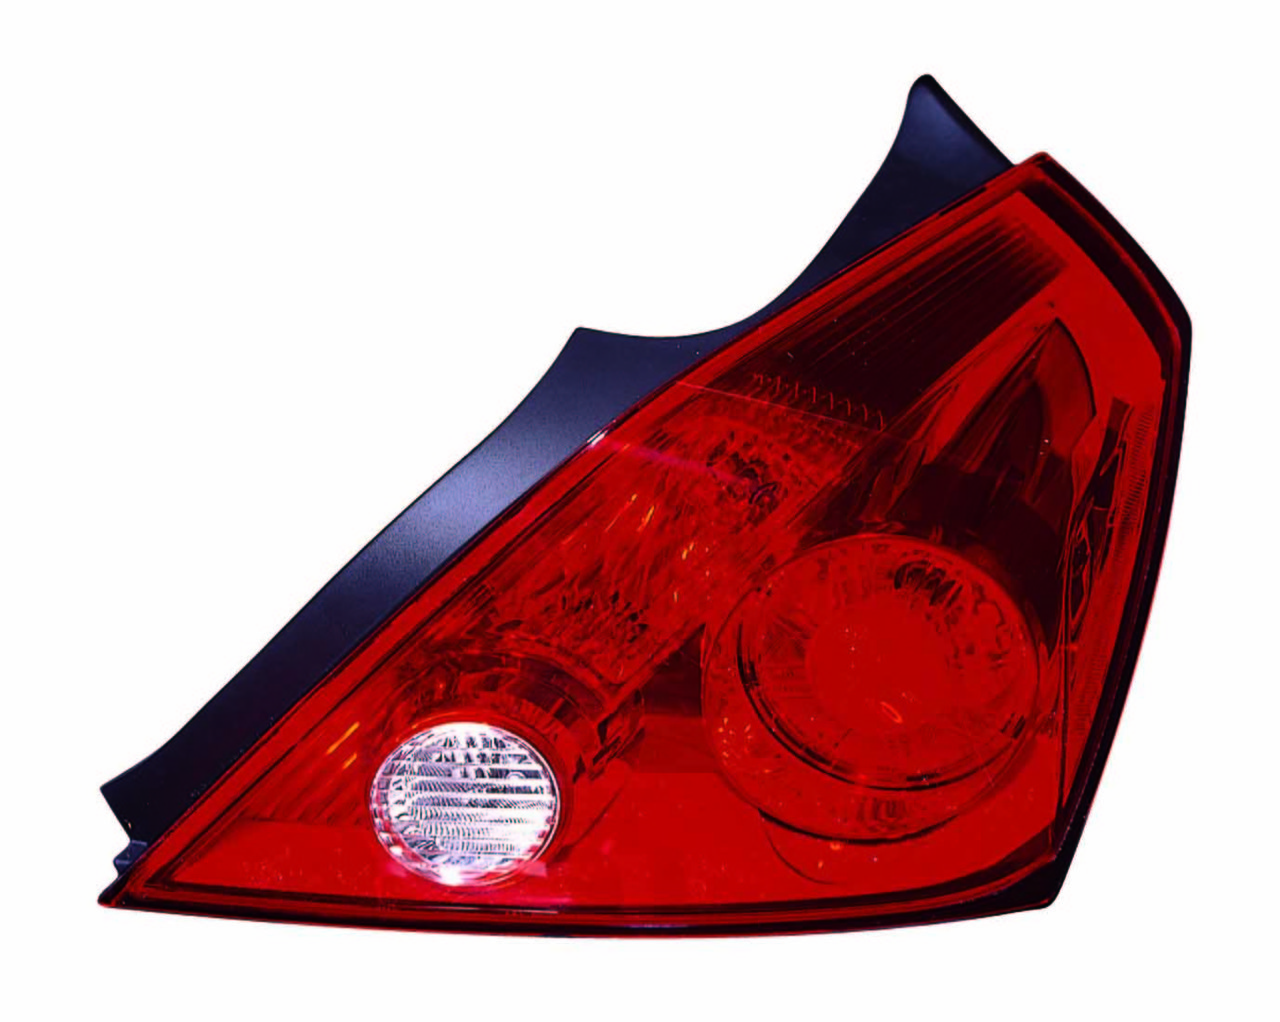 Nissan Altima Coupe 2008 2009 2010 2011 2012 2013 tail light right passenger